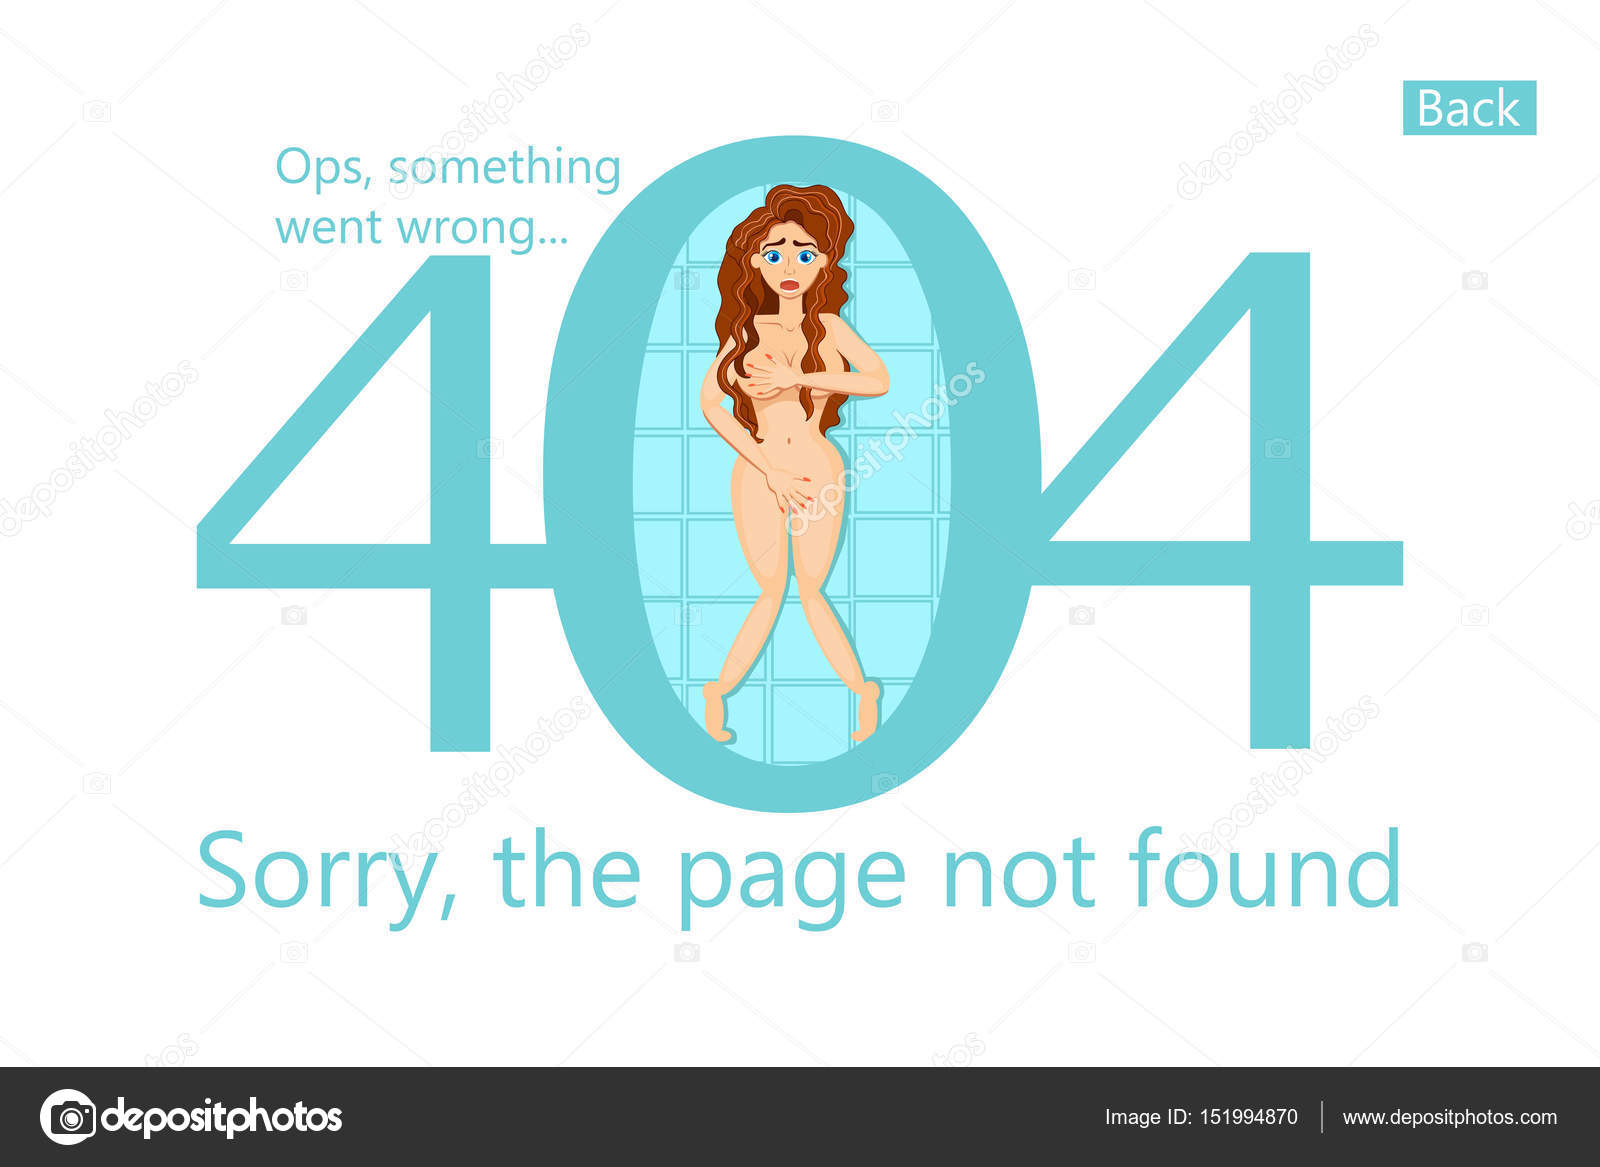 404 not found html template - 28 images - 45 free 404 error web page ...